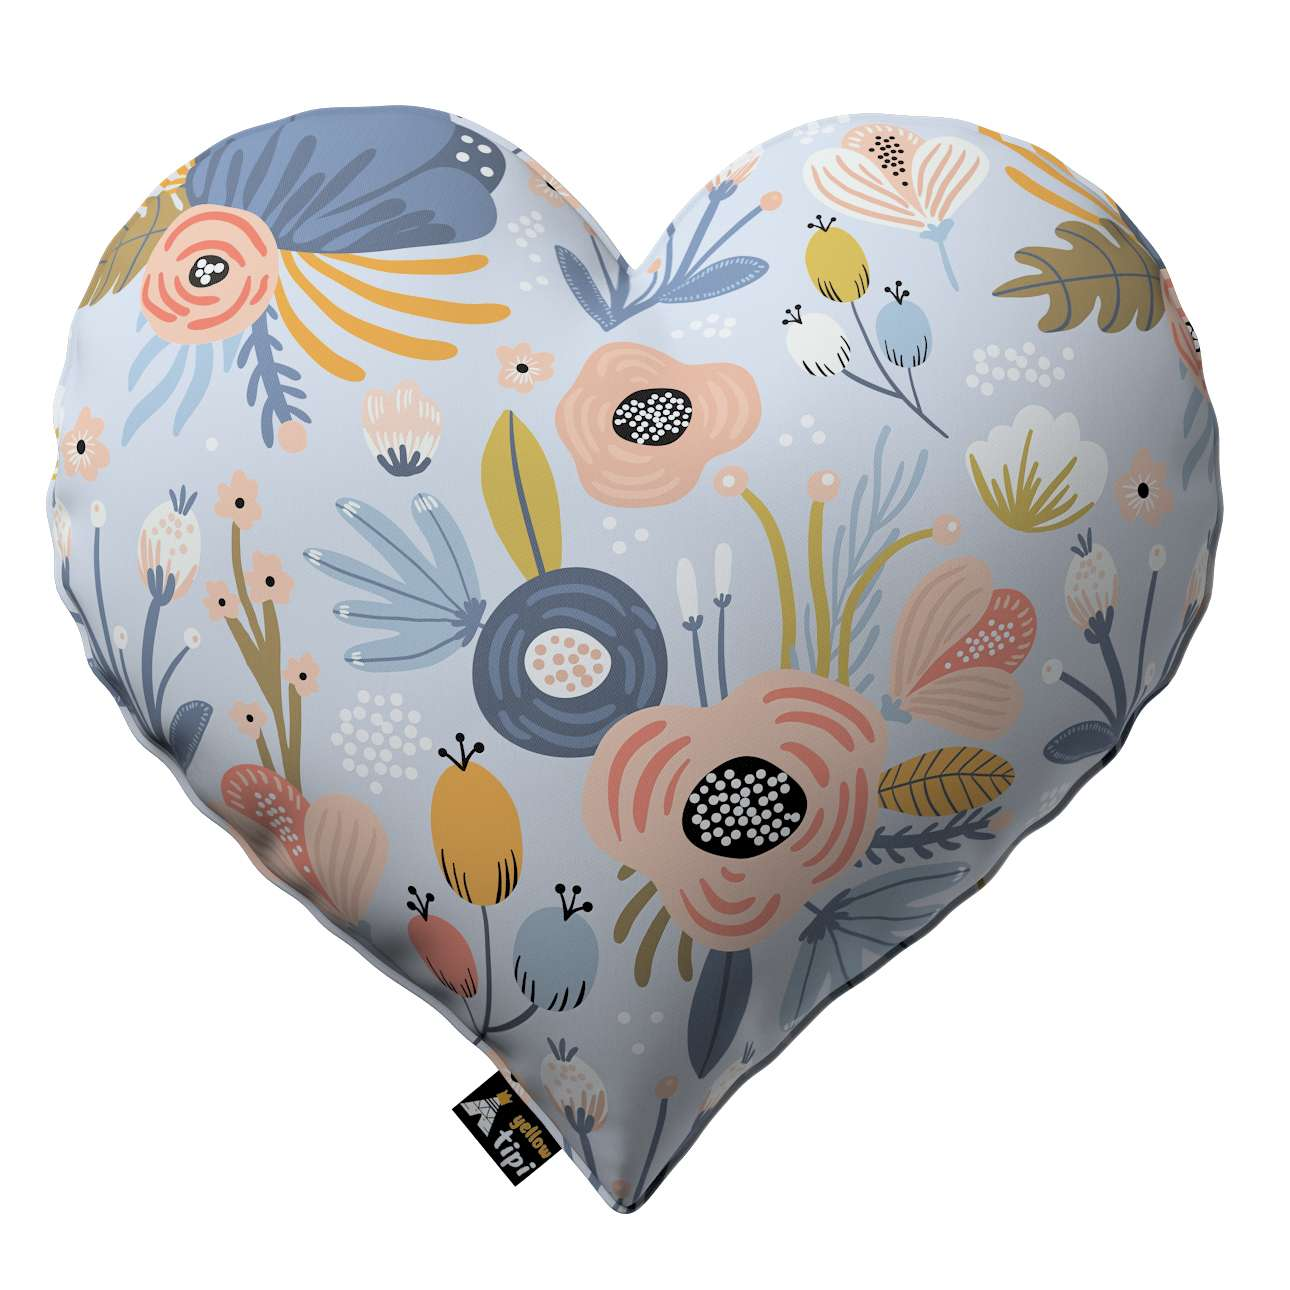 Kissen Heart of Love von der Kollektion Magic Collection, Stoff: 500-05